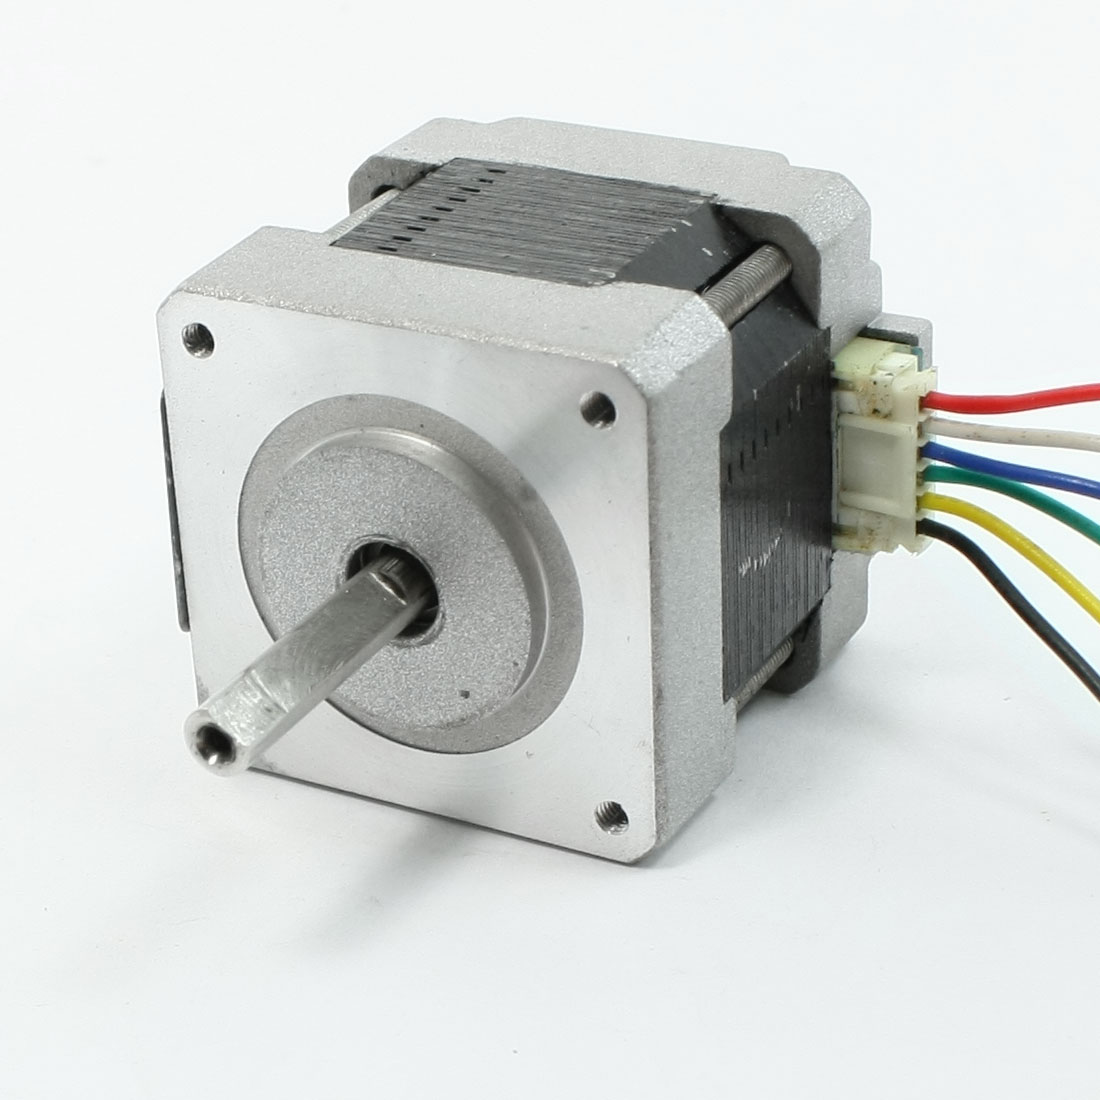 2 Phase 5mm Diameter Drive Shaft JQF39F38-01 Model Stepper Stepping Motor 0.8A